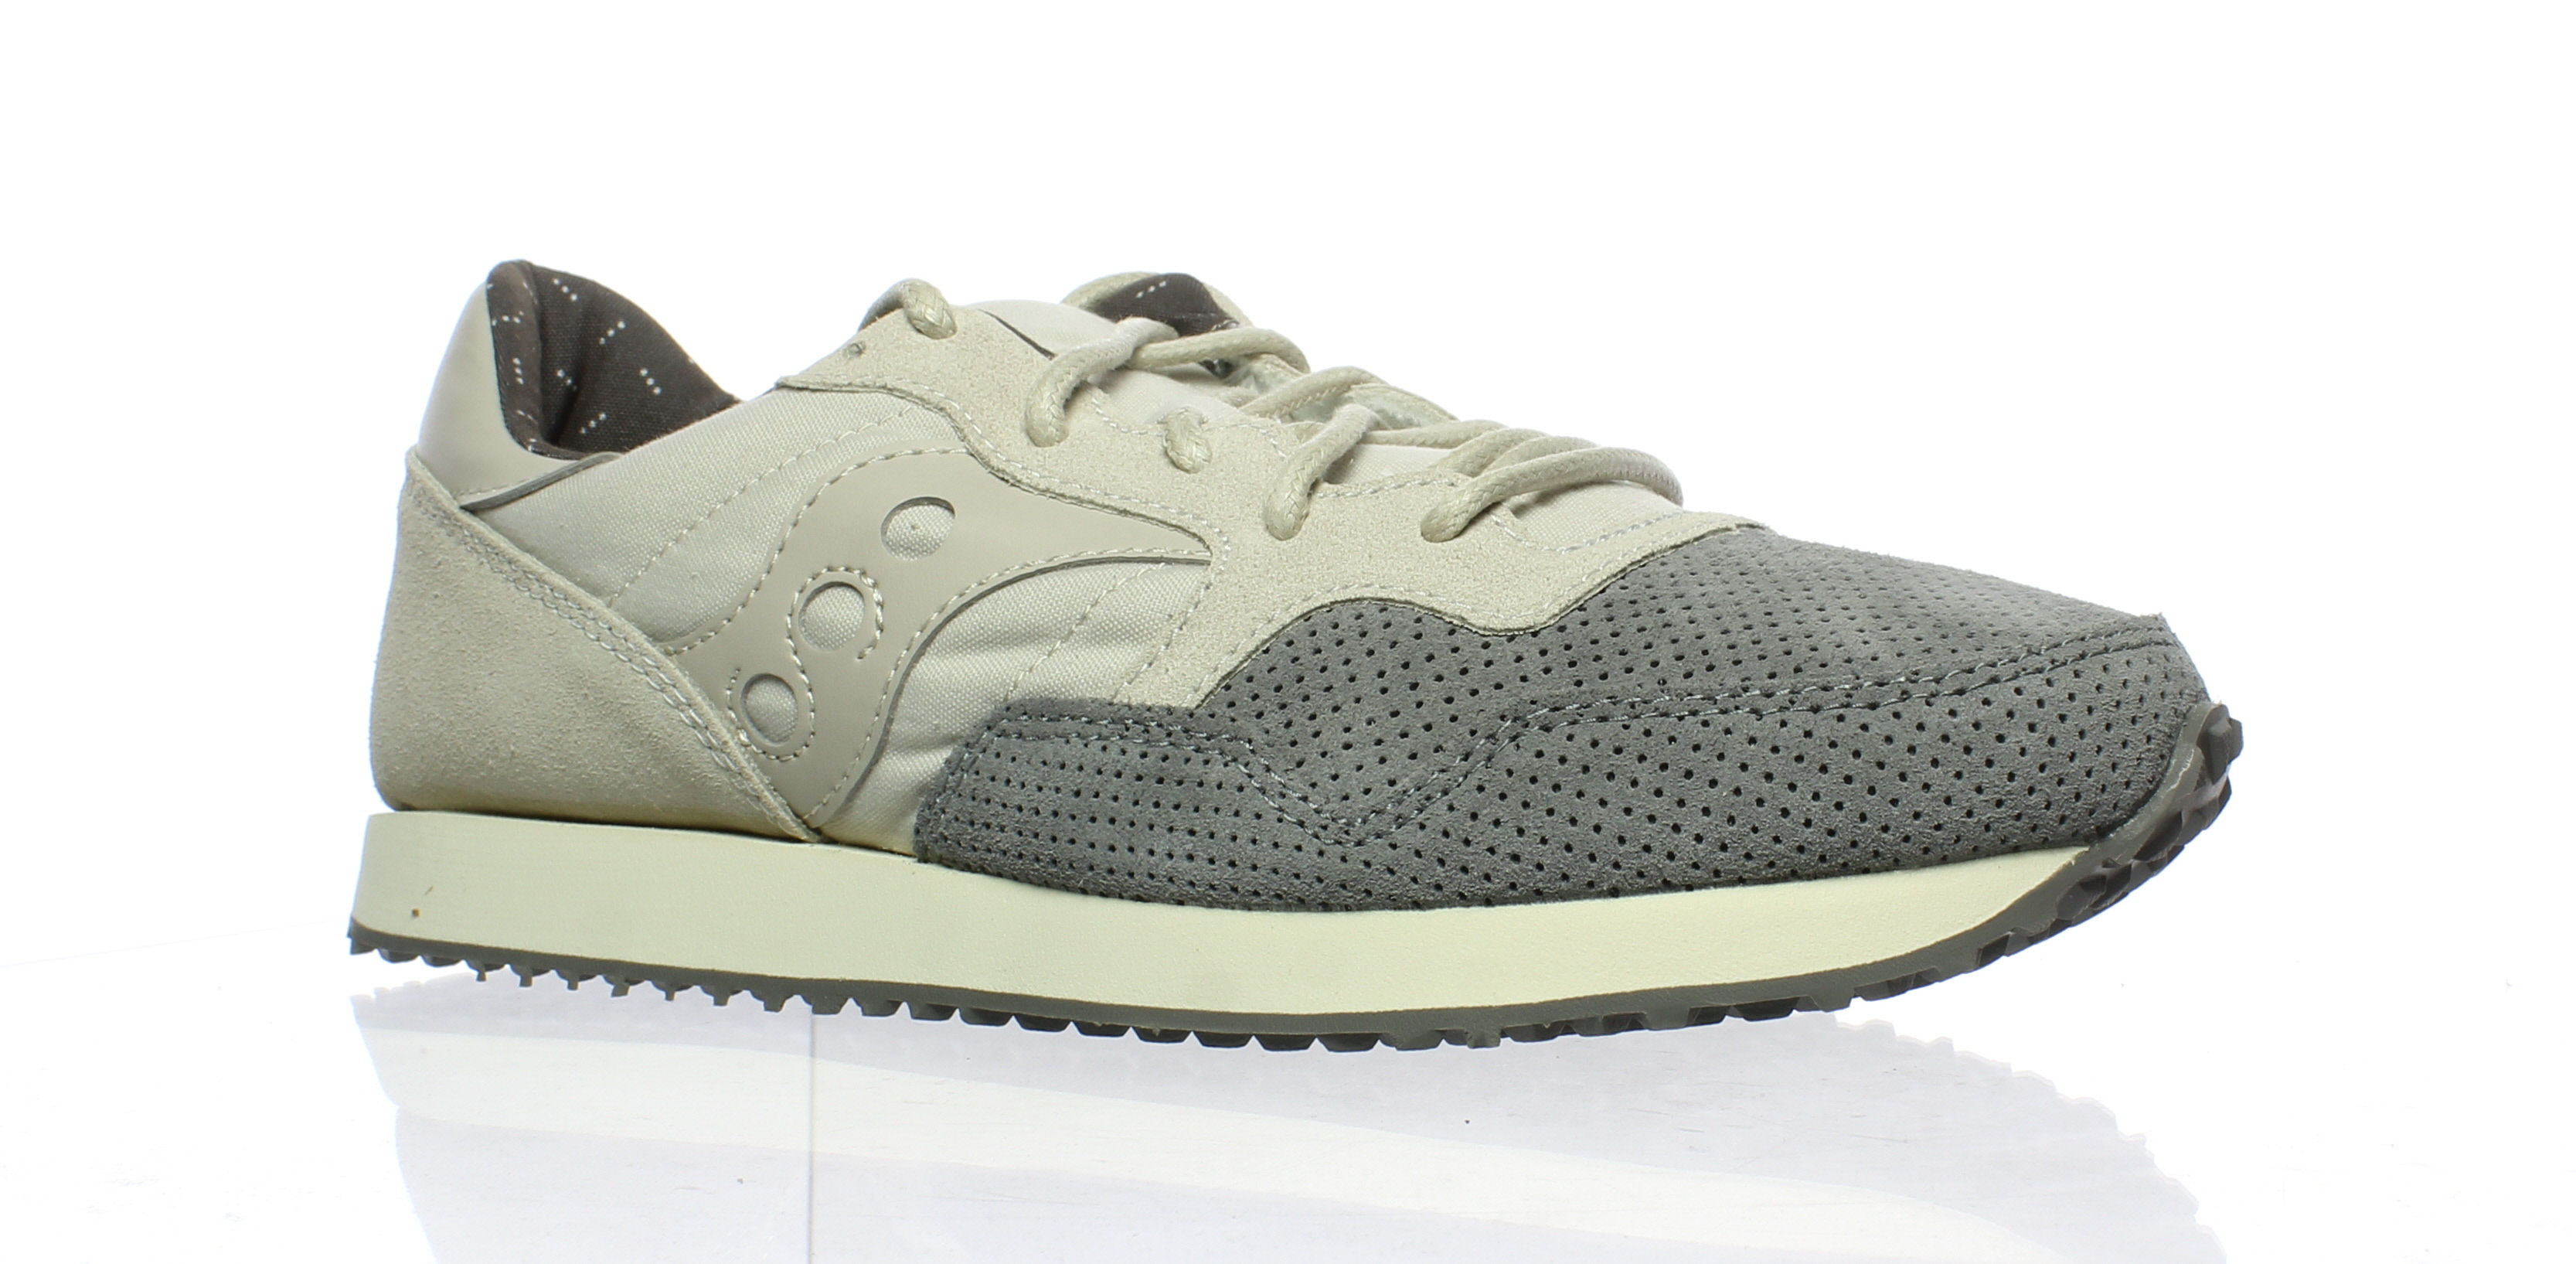 6b50d20d77cd New Saucony Womens Dxn Trainer Grey Running Shoes Size 11 ...